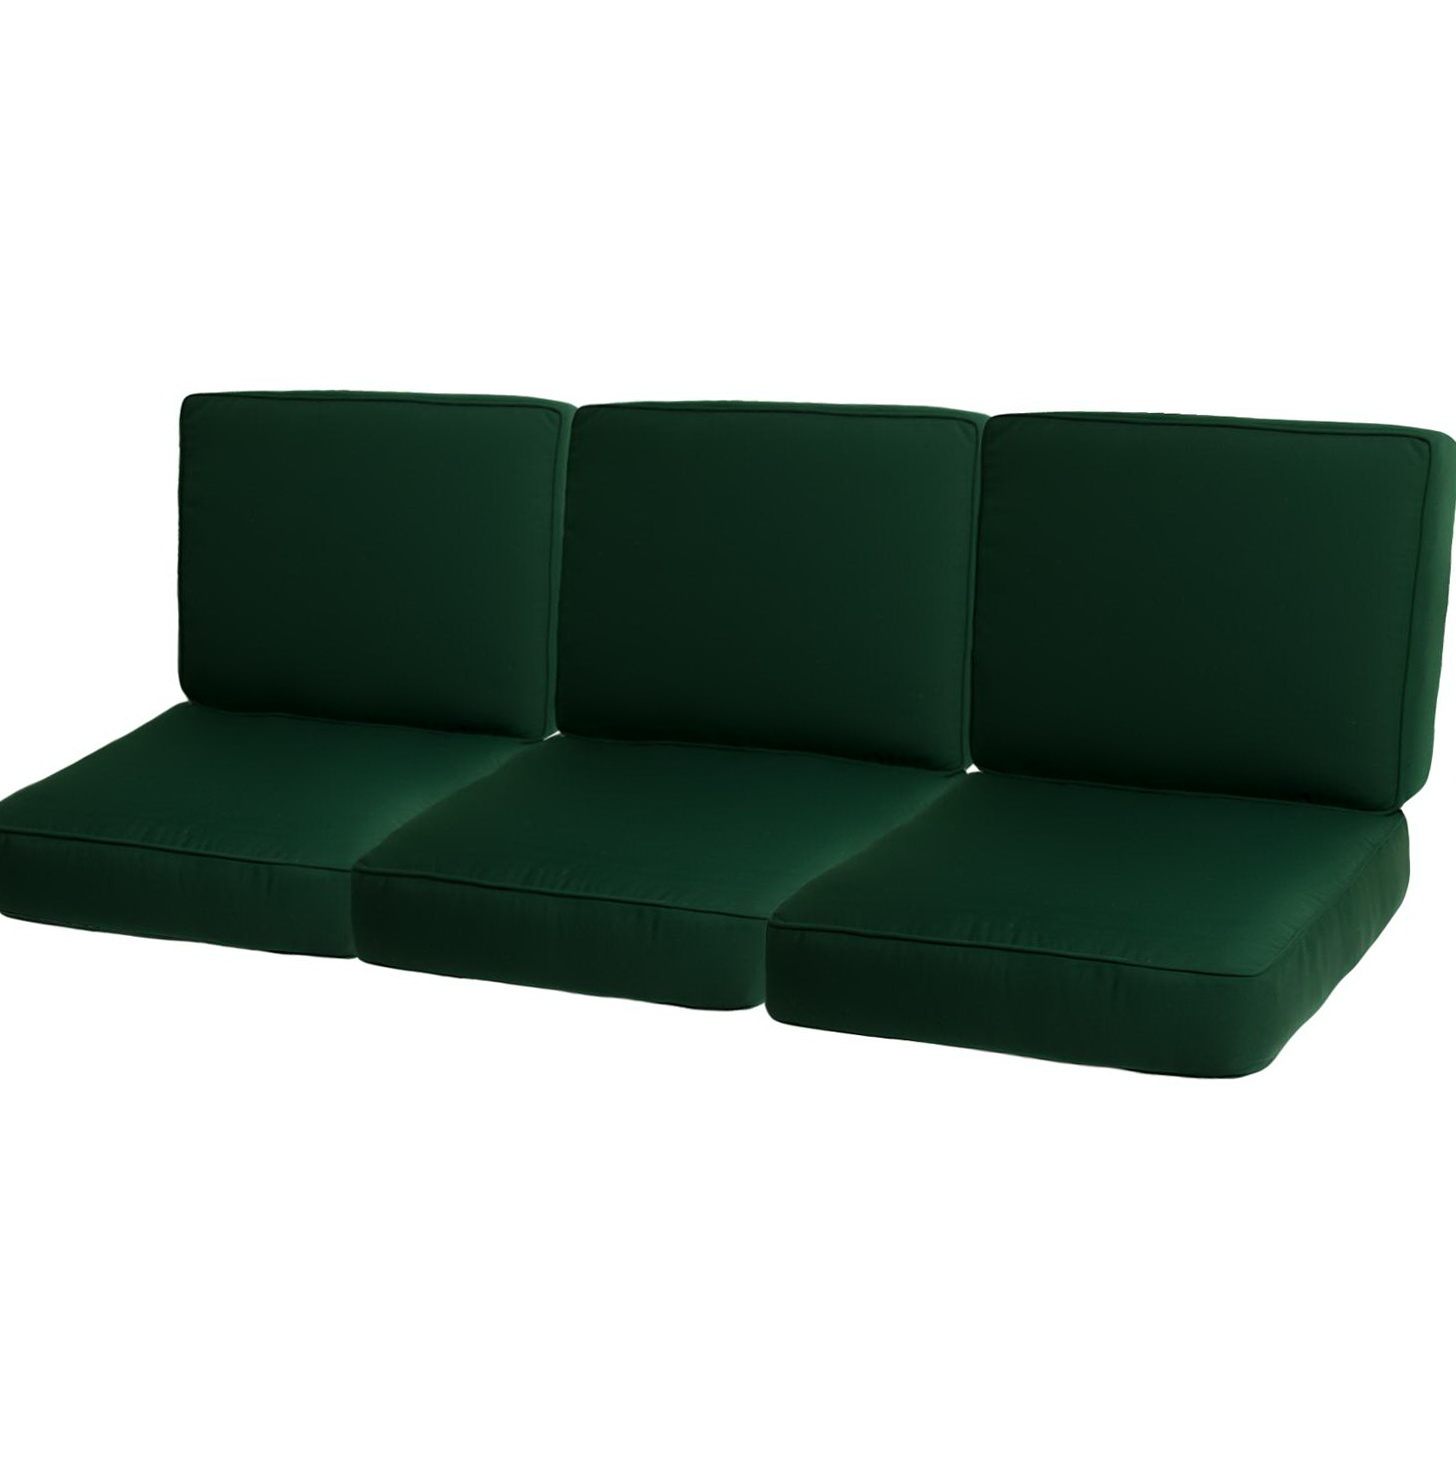 Replacement Cushions For Sofa Seats